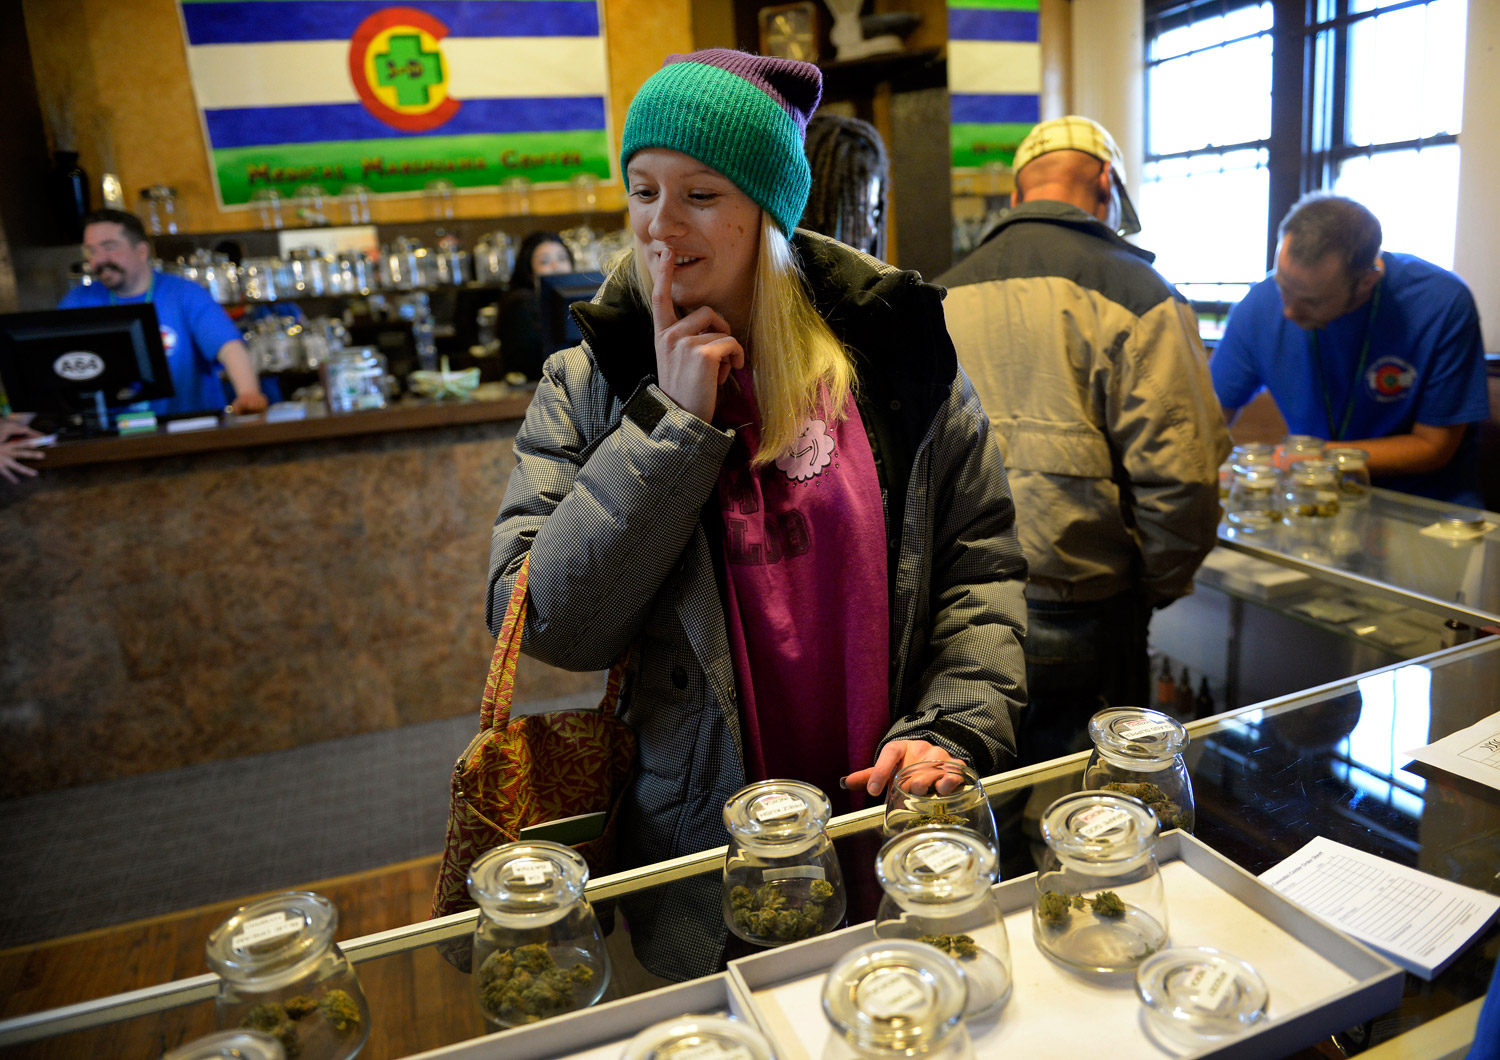 eh3hghghghgh55huthgju450t4o5pt3k433r25343rerfwee - Colorado Marijuana Sales Blow Past $200 Million In July